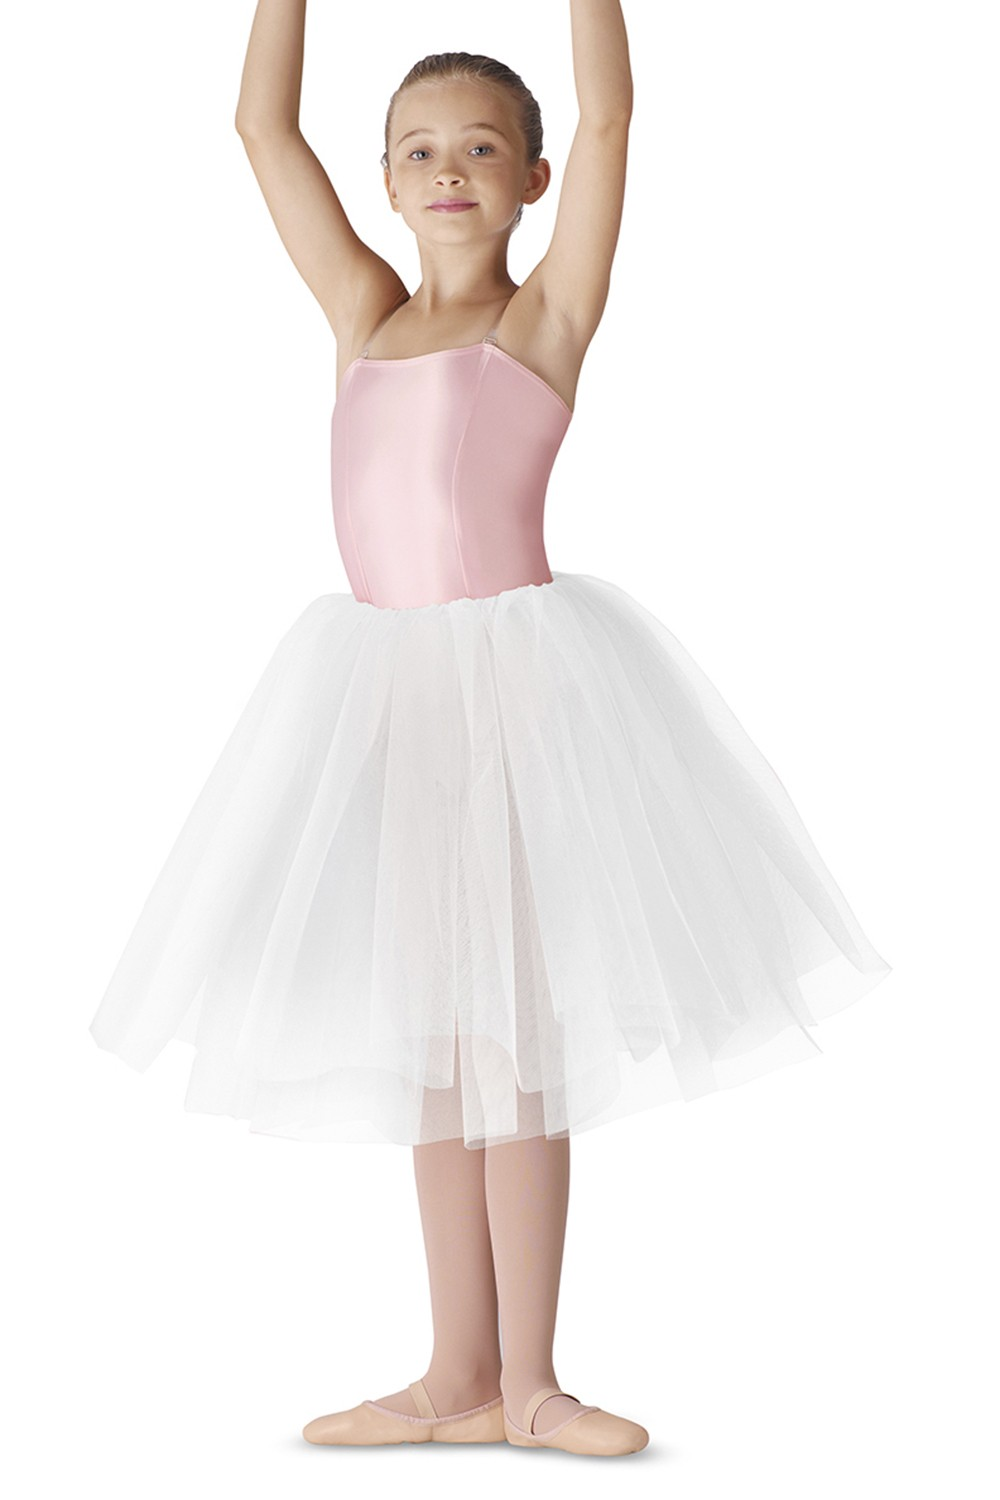 Soft Tulle Juliet Skirt  Children's Dance Skirts